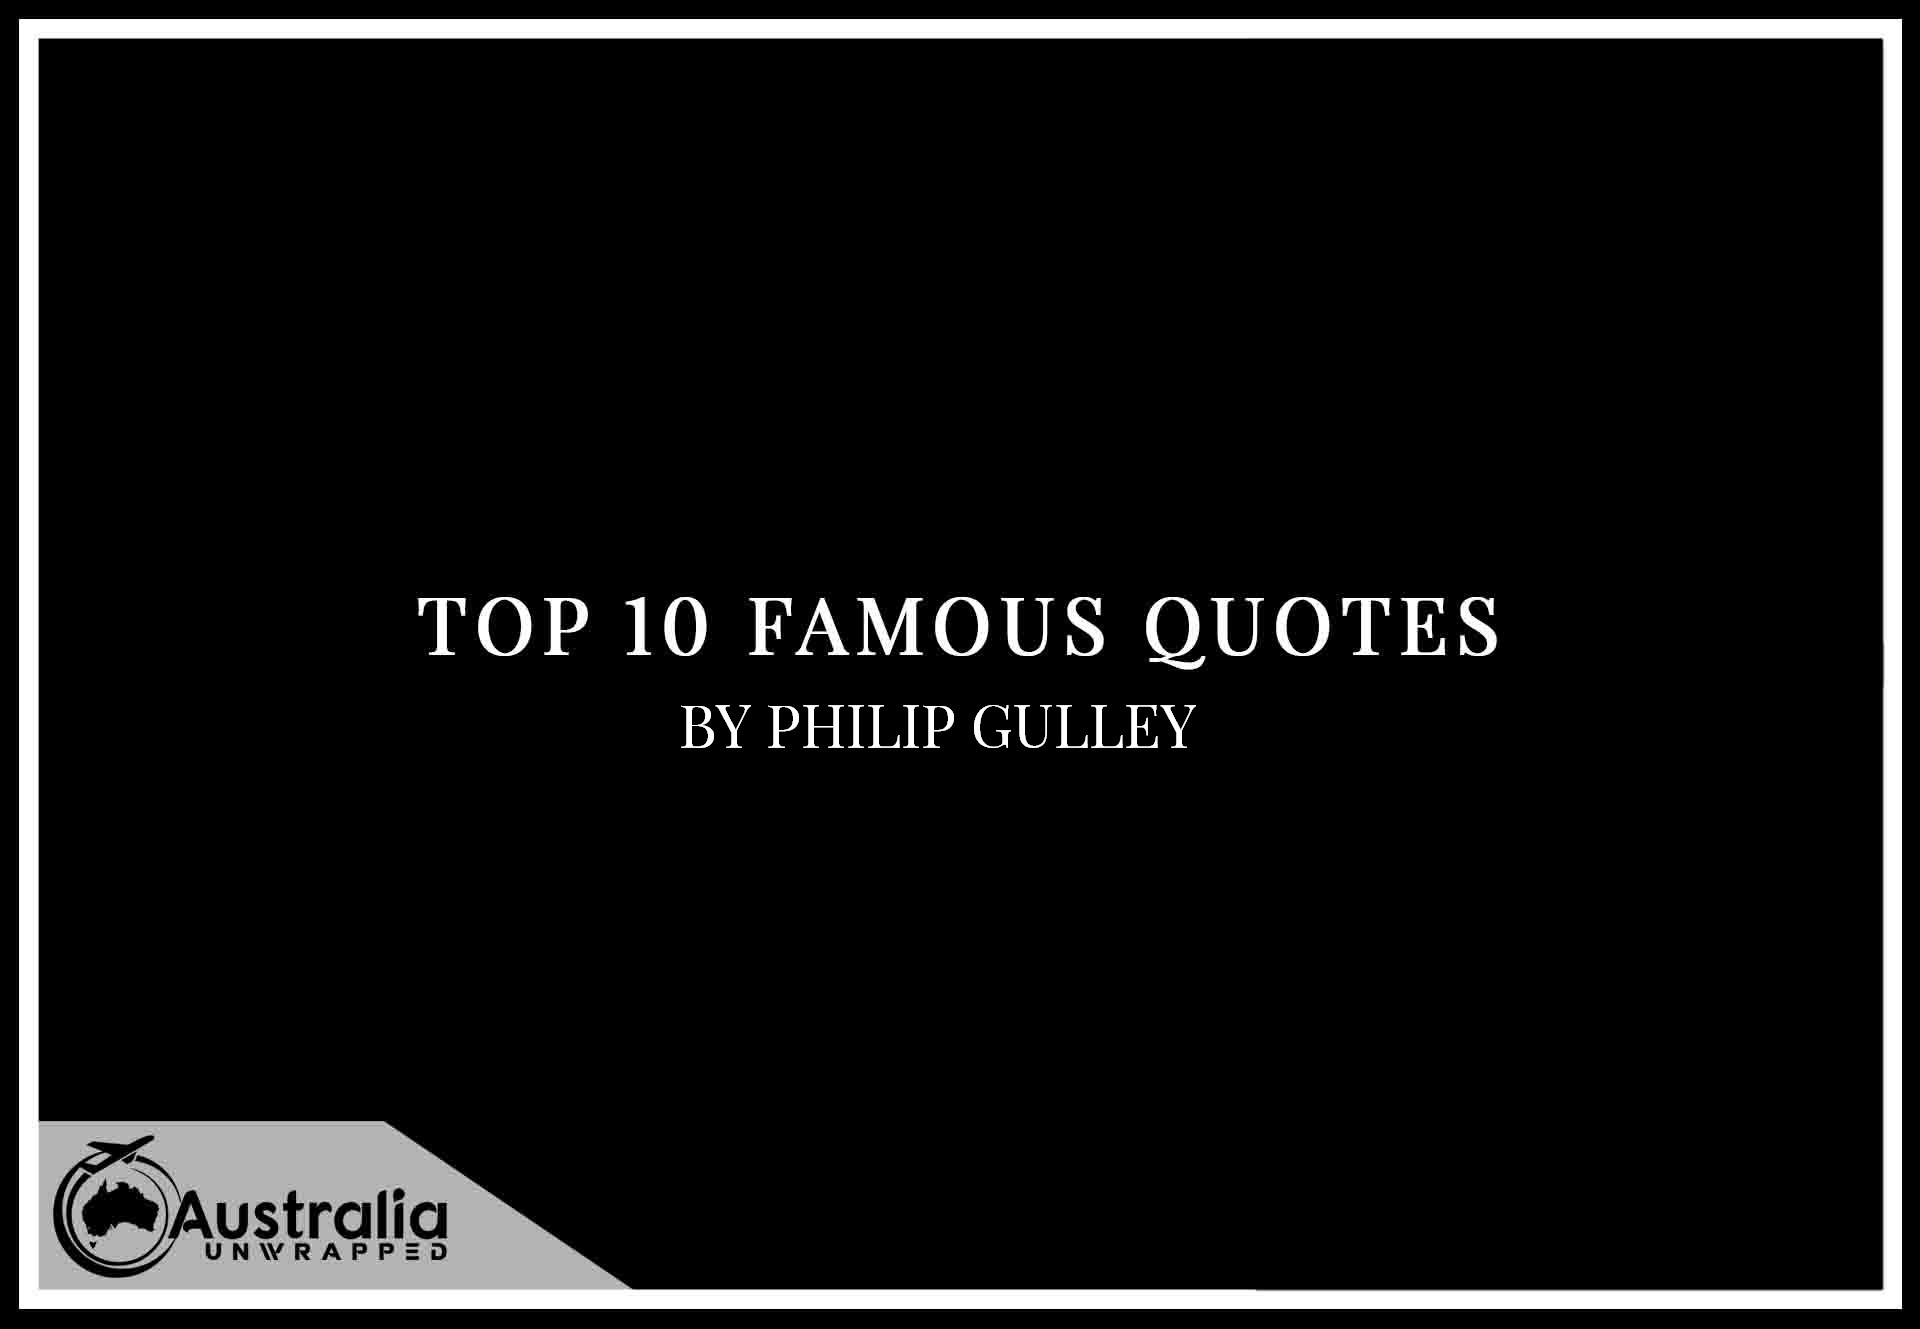 Top 10 Famous Quotes by Author Philip Gulley